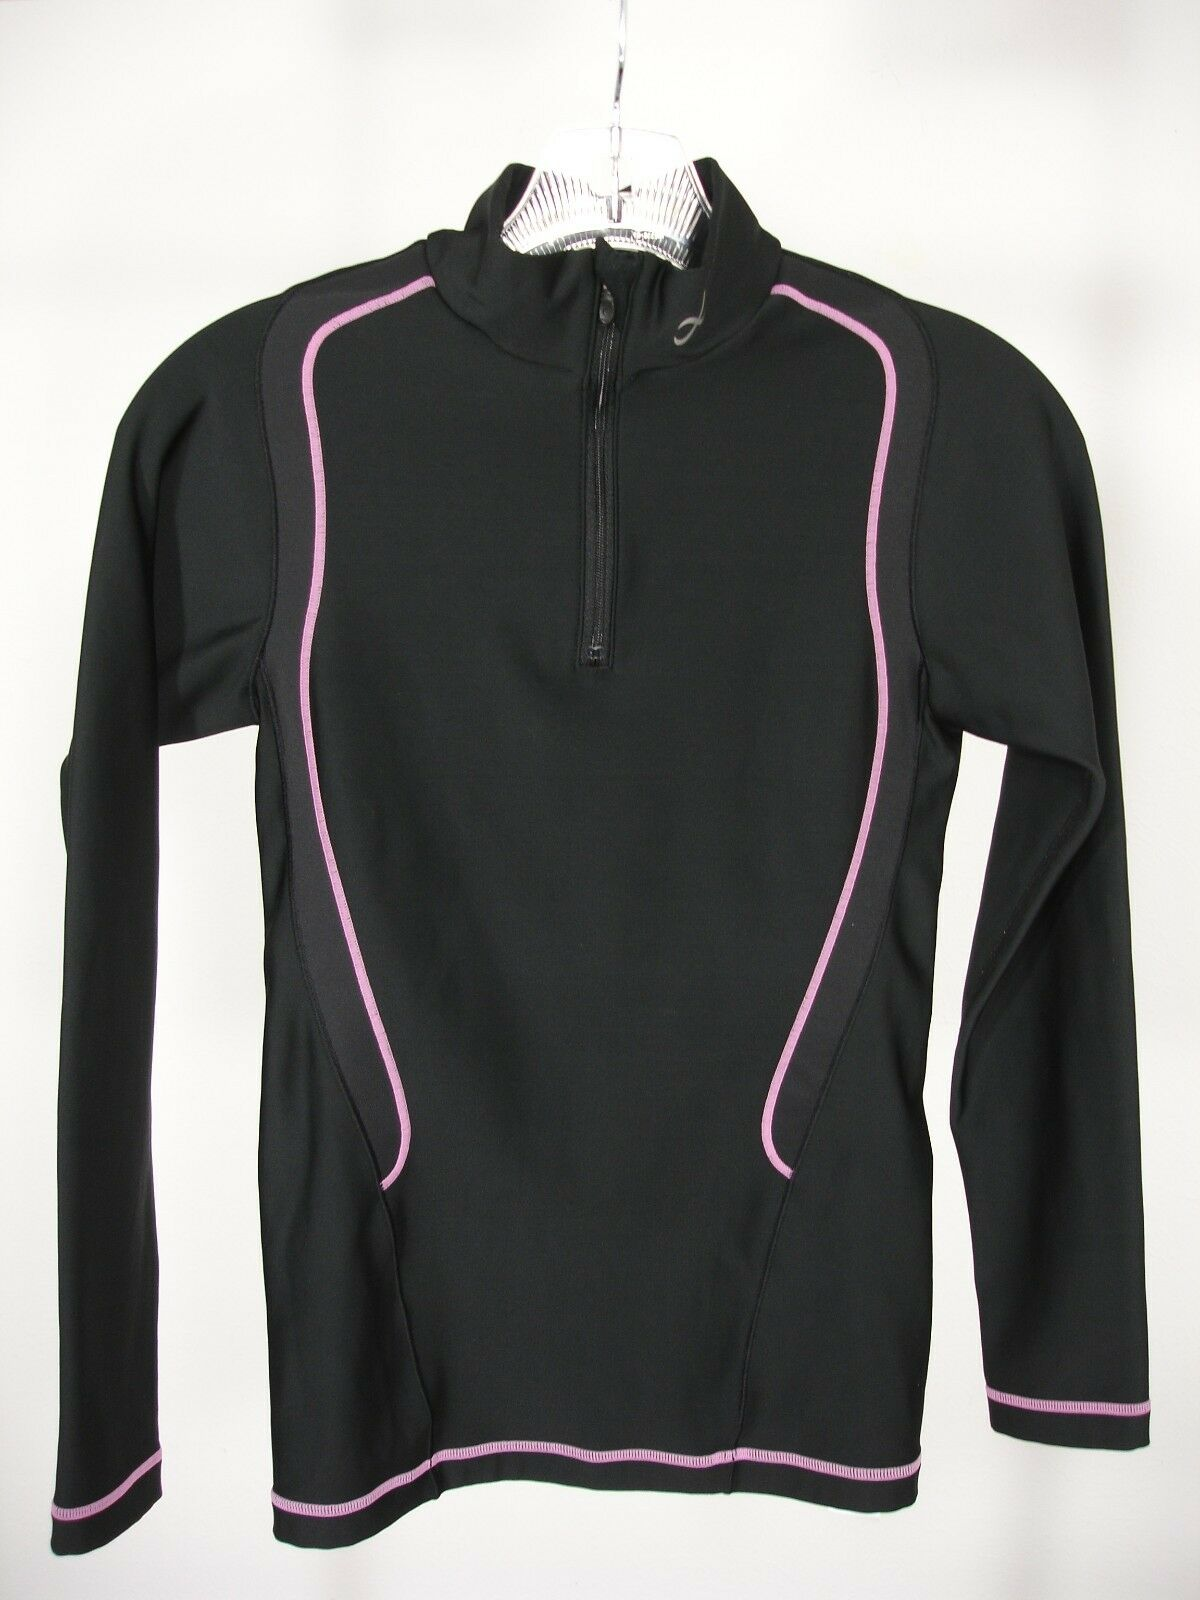 CW-X 160075 INSULATOR WEB TOP 1 2 ZIP LONG SLEEVE ATHLETIC TOP WOMEN'S XS